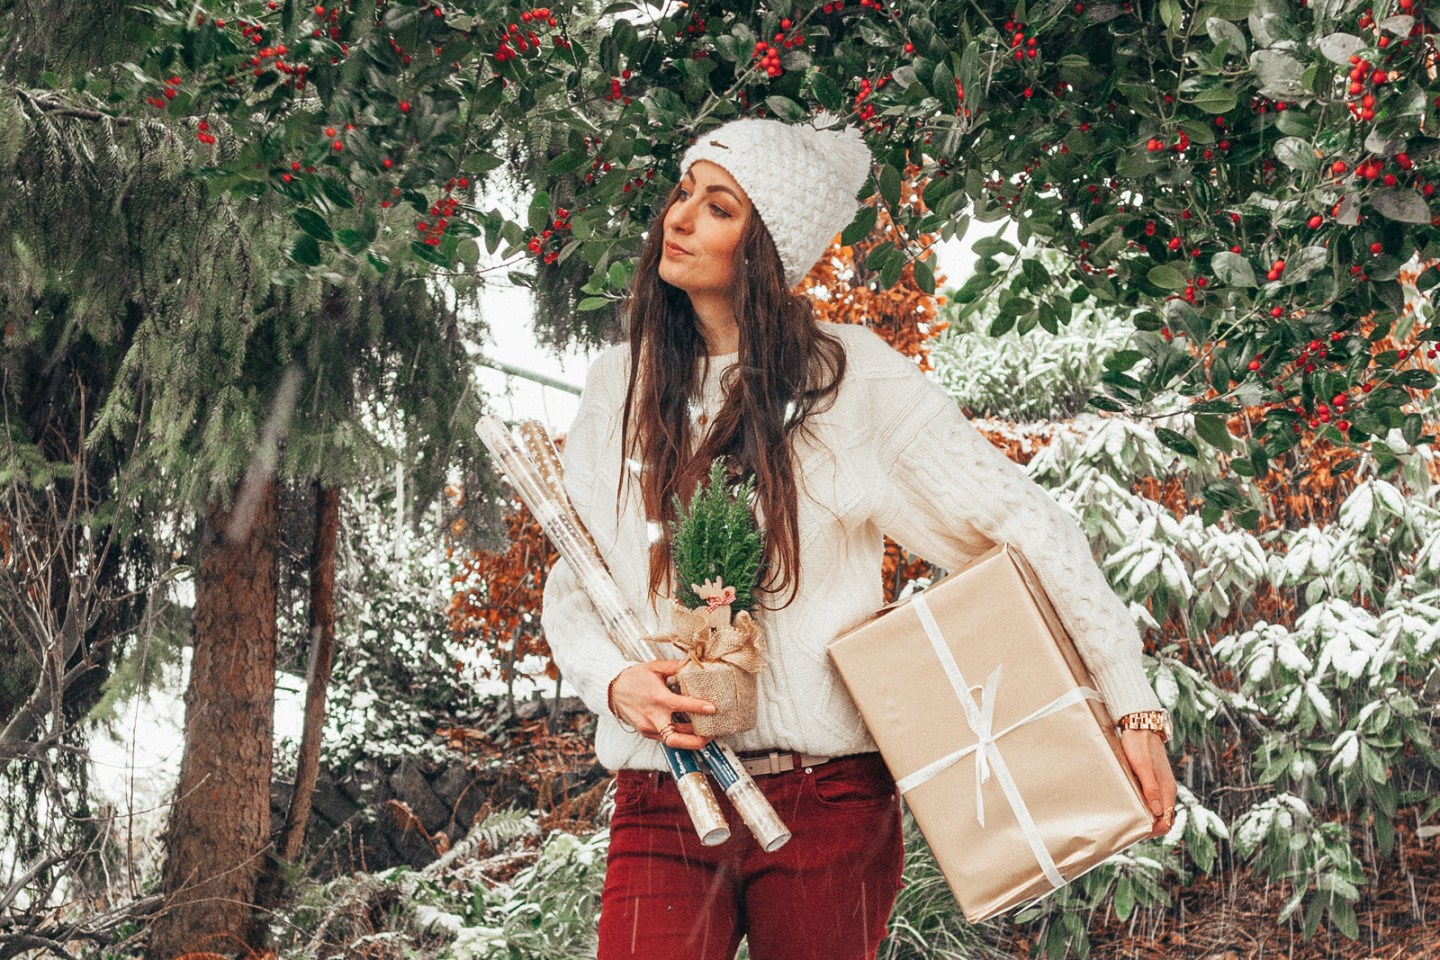 Merry Christmas Lifestyle by Linda